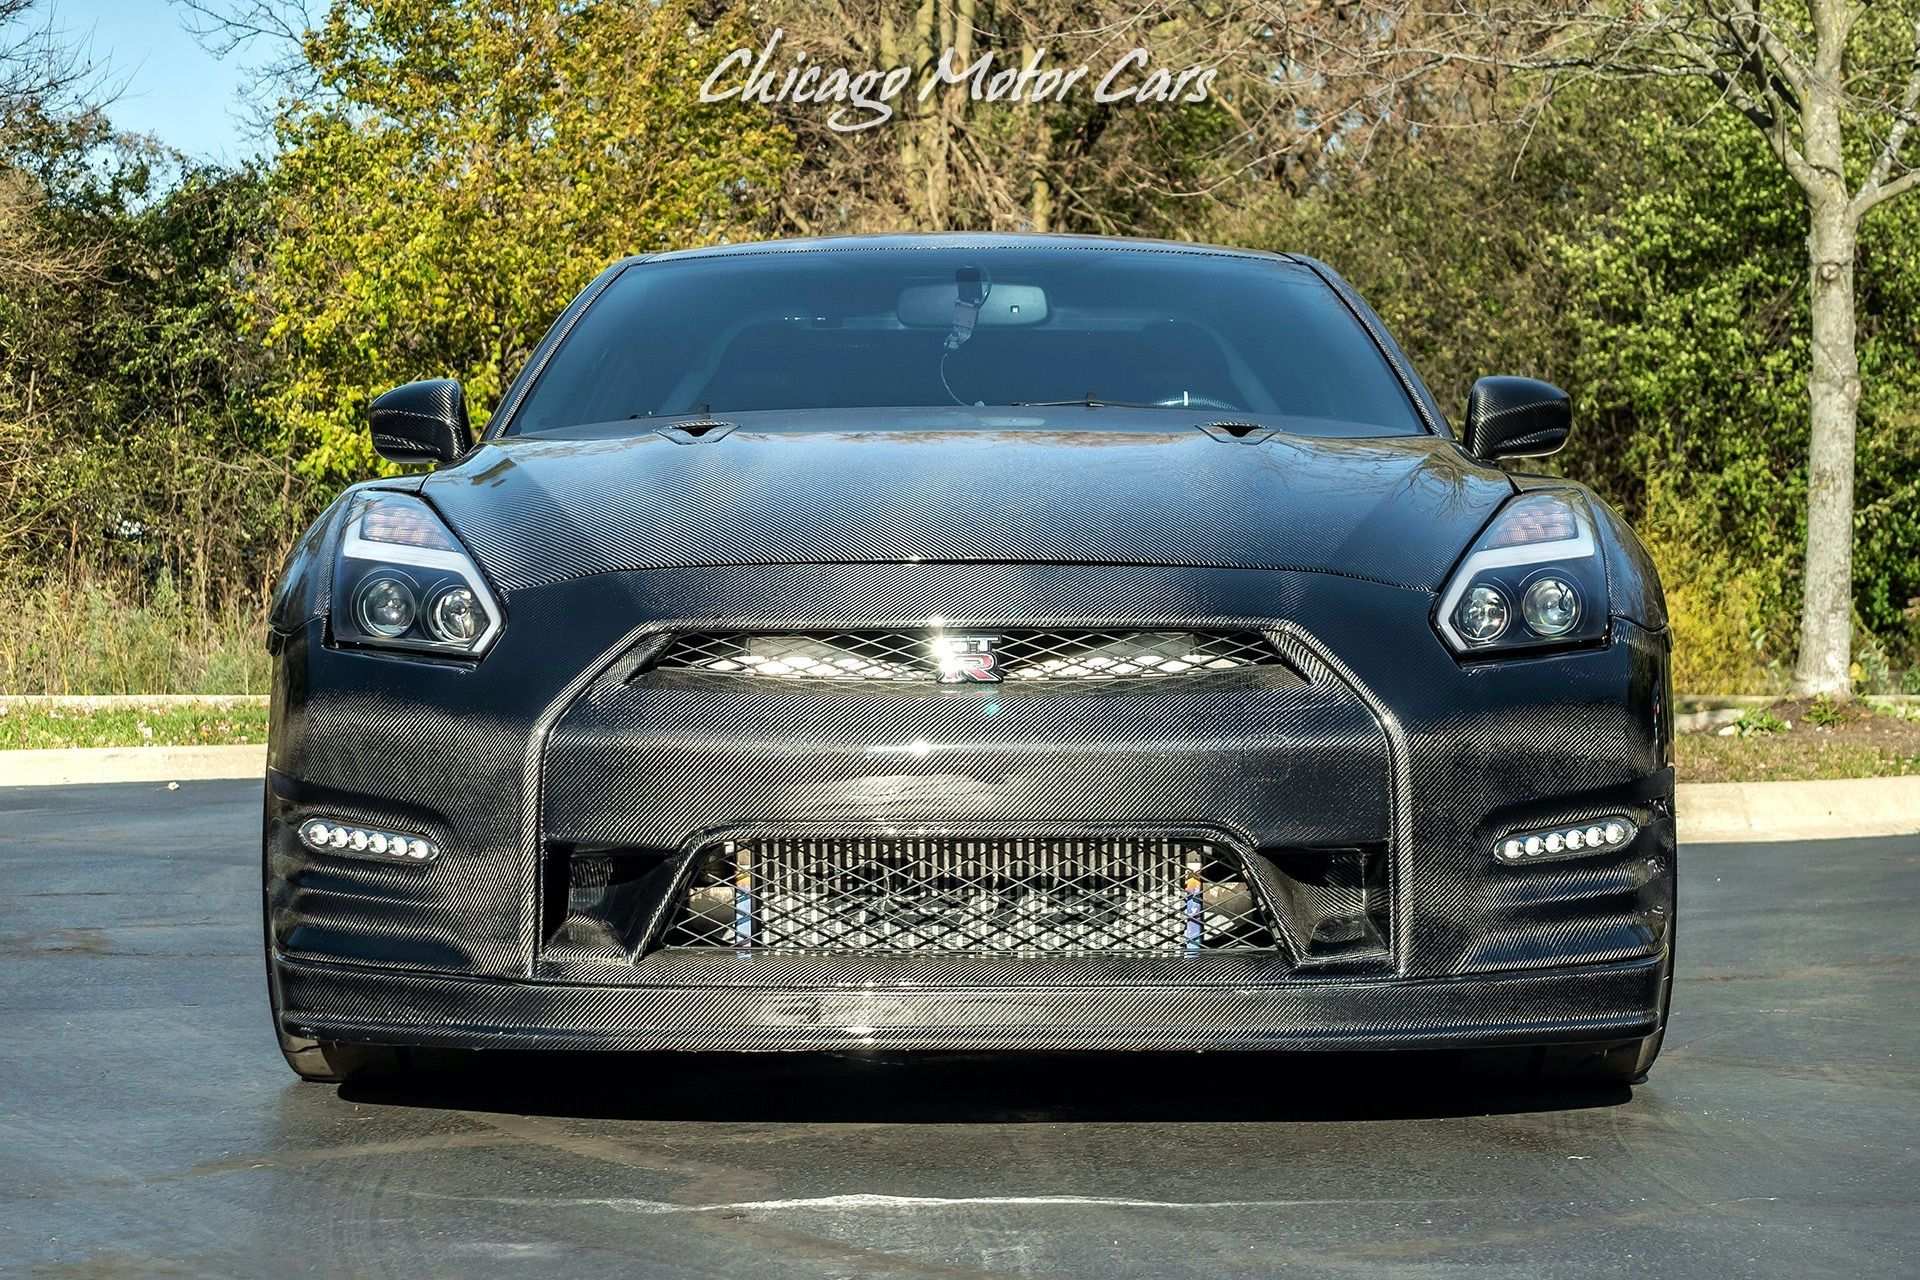 full-carbon_Nissan_GT-R_tuned_0068